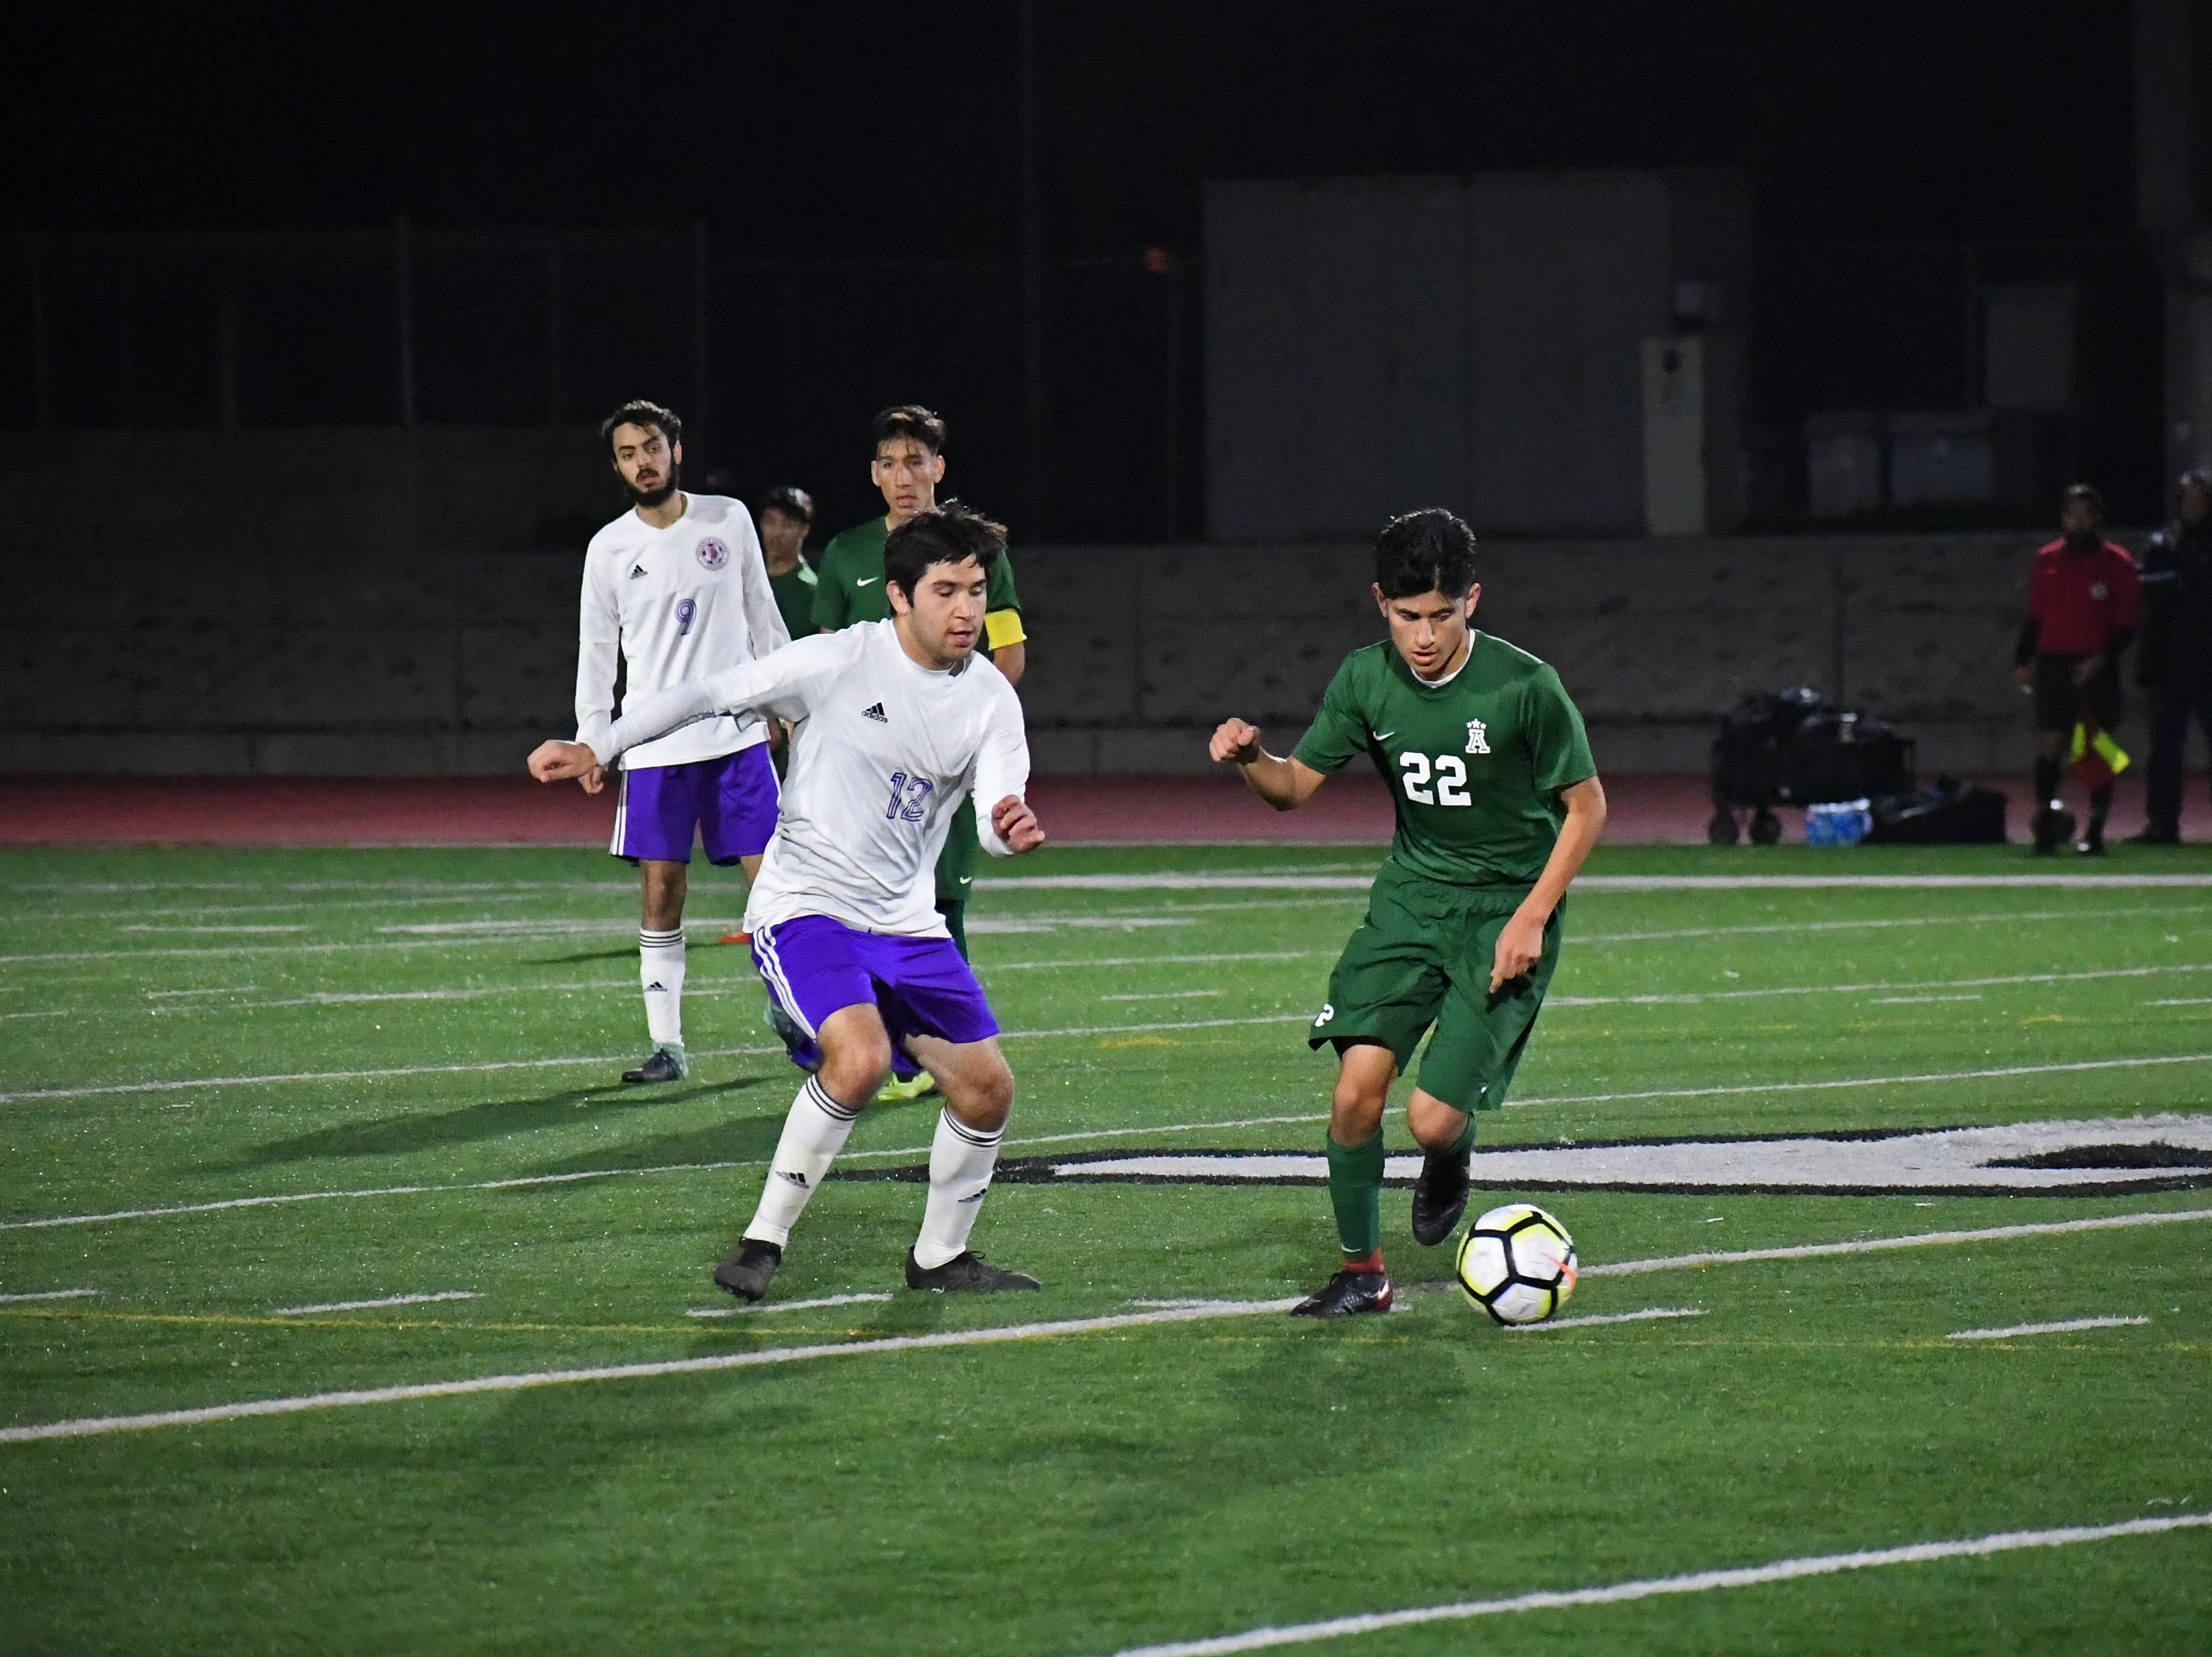 Alisal defender Joel Garcia (22) steals the ball and turns upfield.